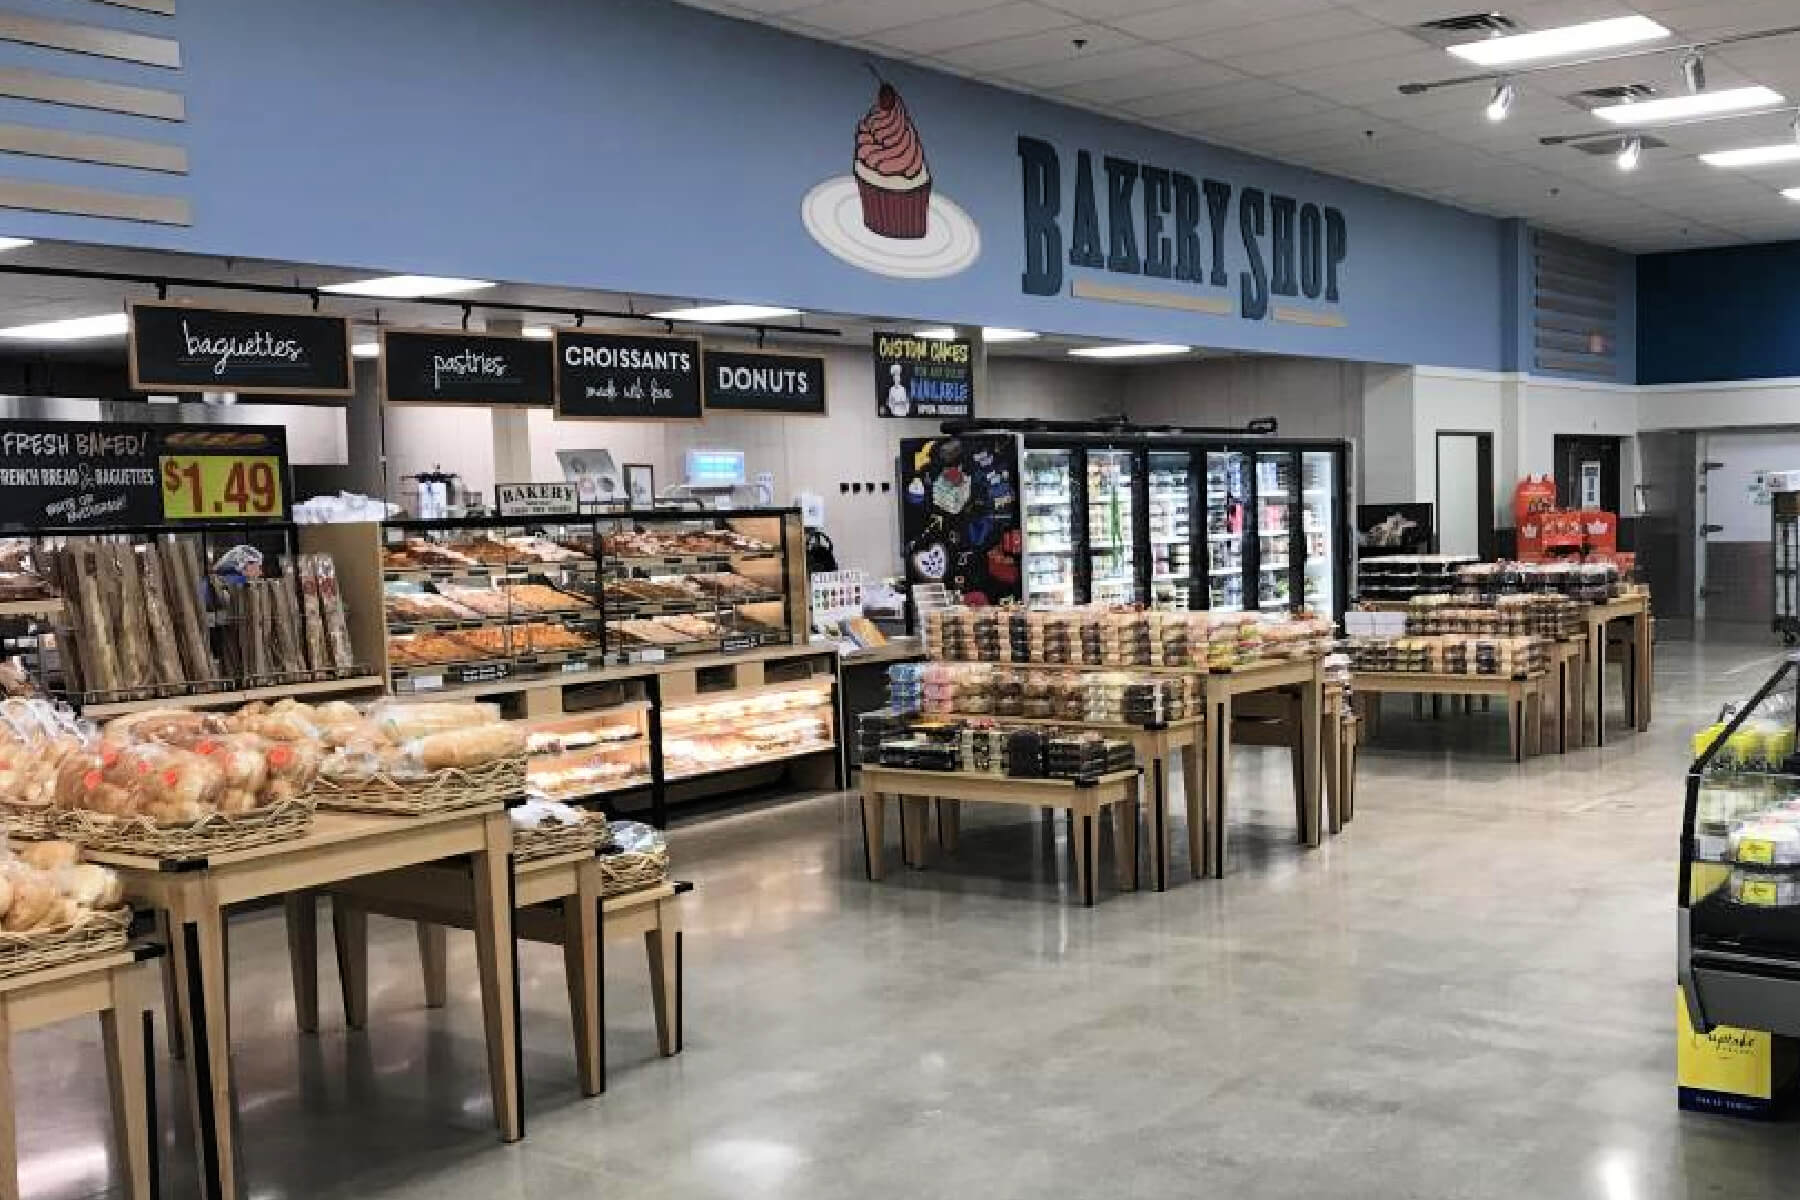 Knoebel Construction completes six-phase remodel of Pay Less Super Markets